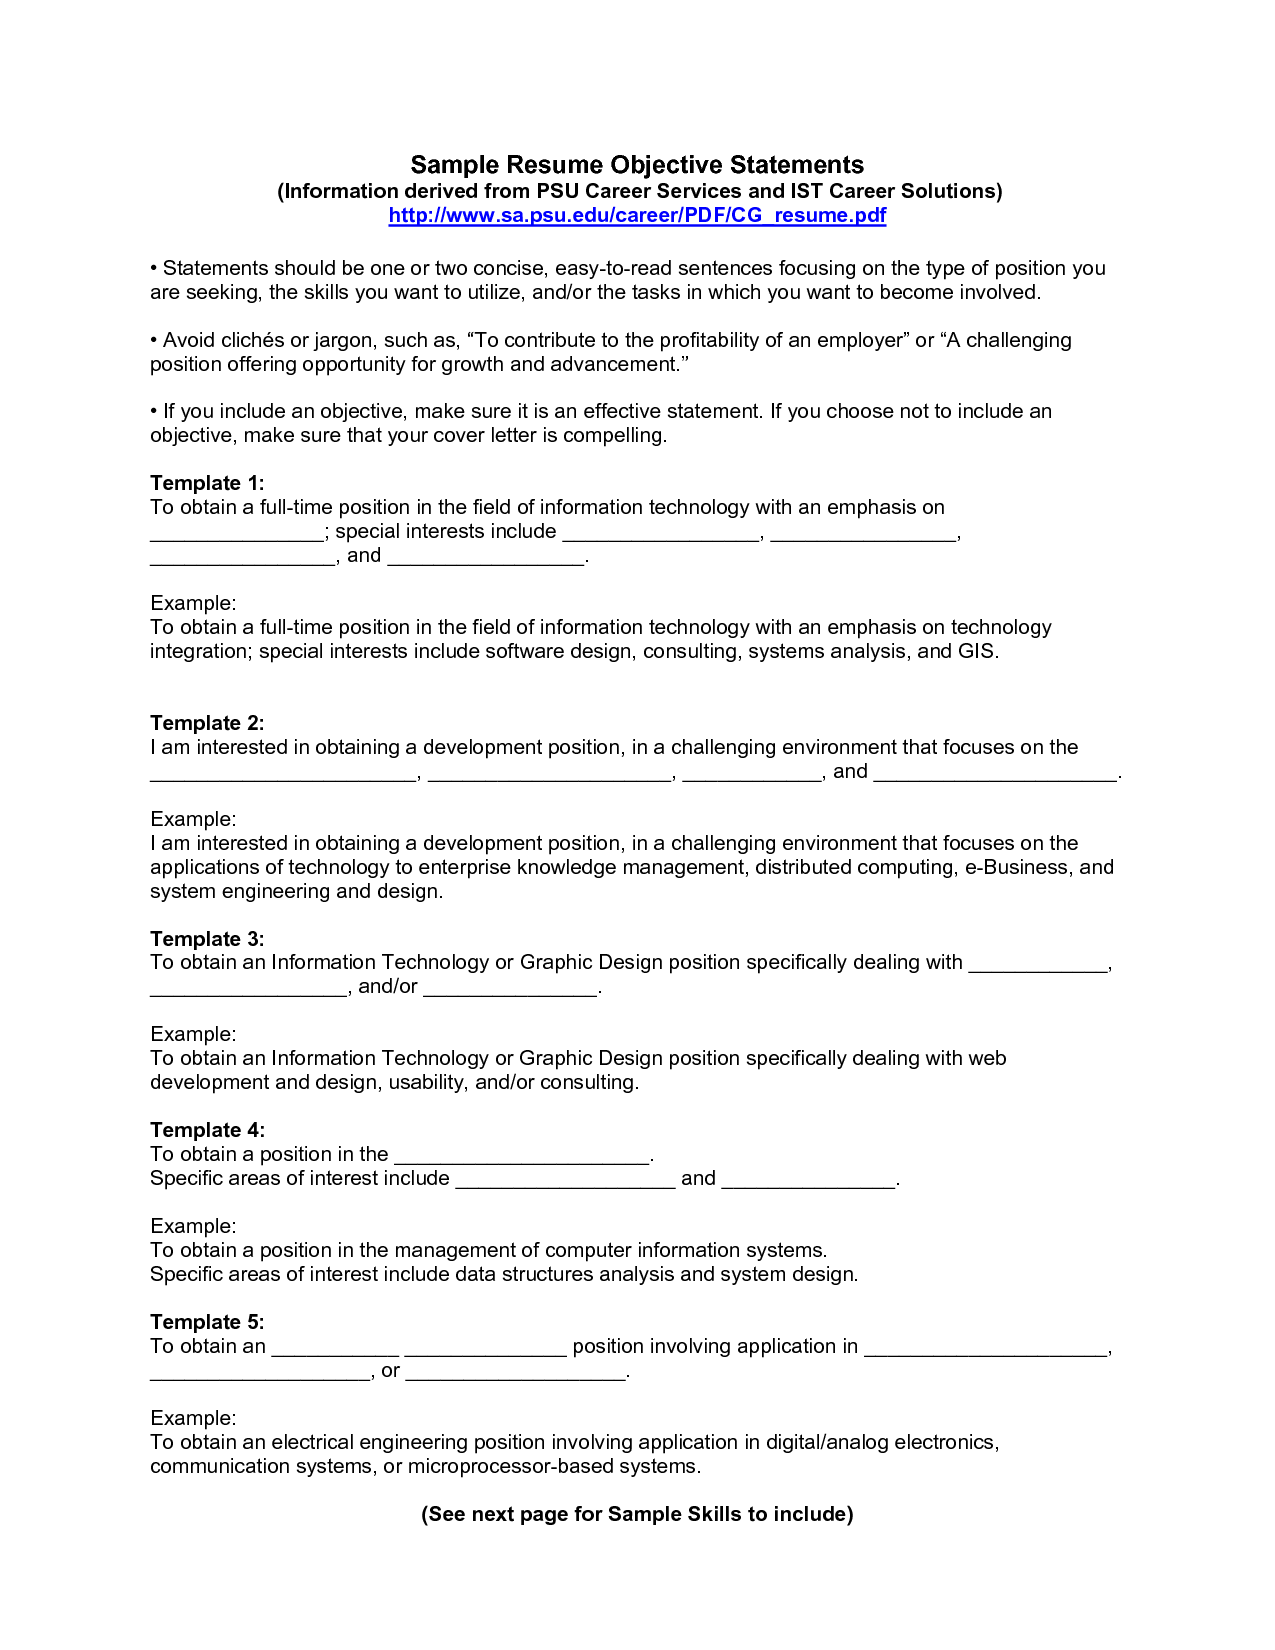 resume Possible Objectives For Resumes resume objective examples professional resumes resumes